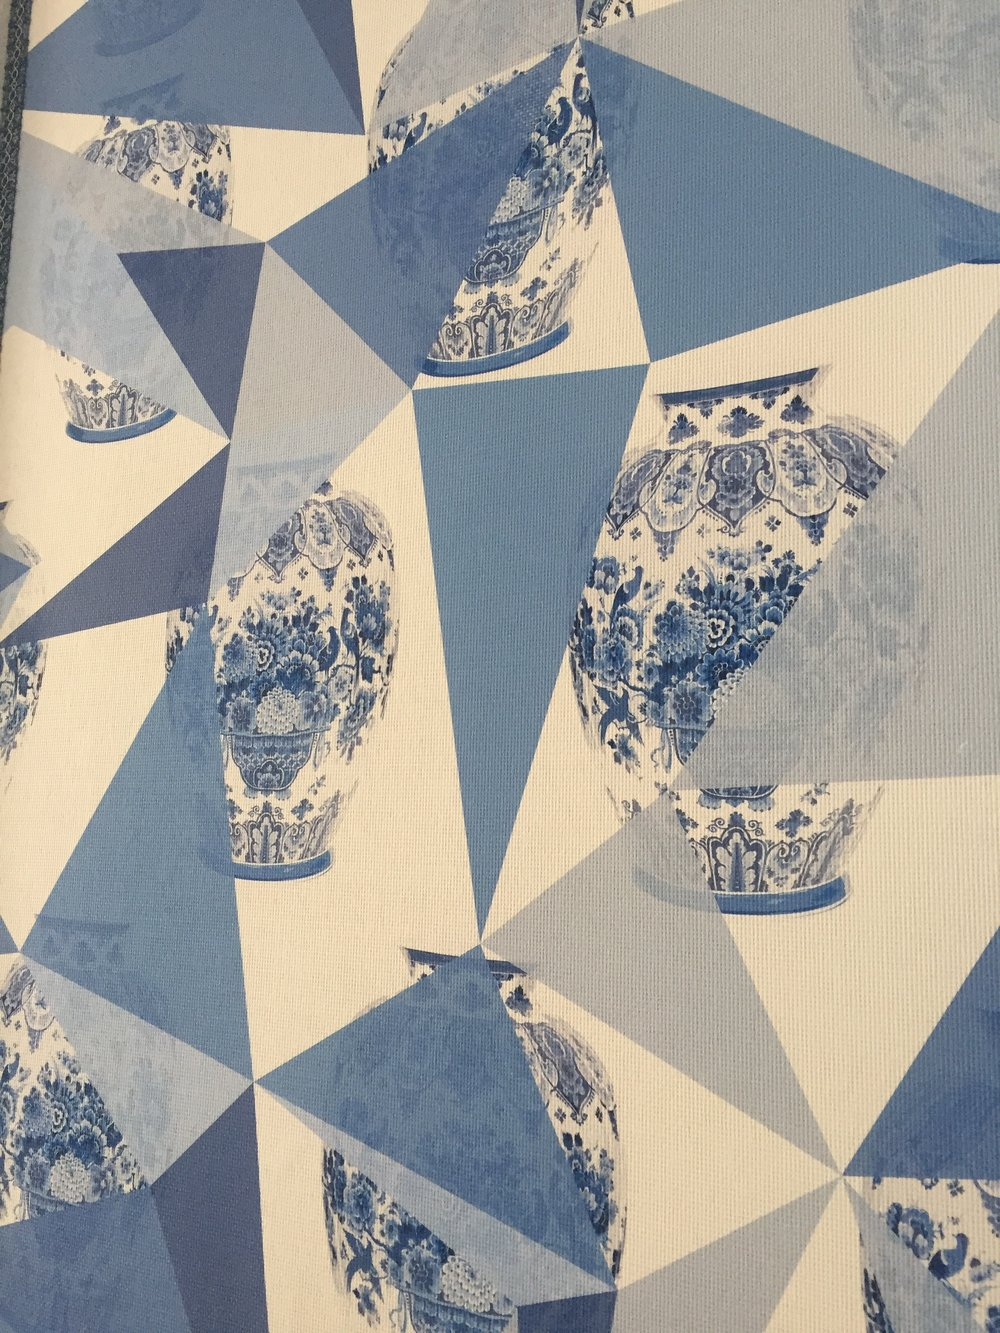 Modern-minded abstractions layer over classic blue-and-white porcelain motifs in the designer's grasscloth-on-paperwall covering by Nicolette Mayer for Scalamandré.